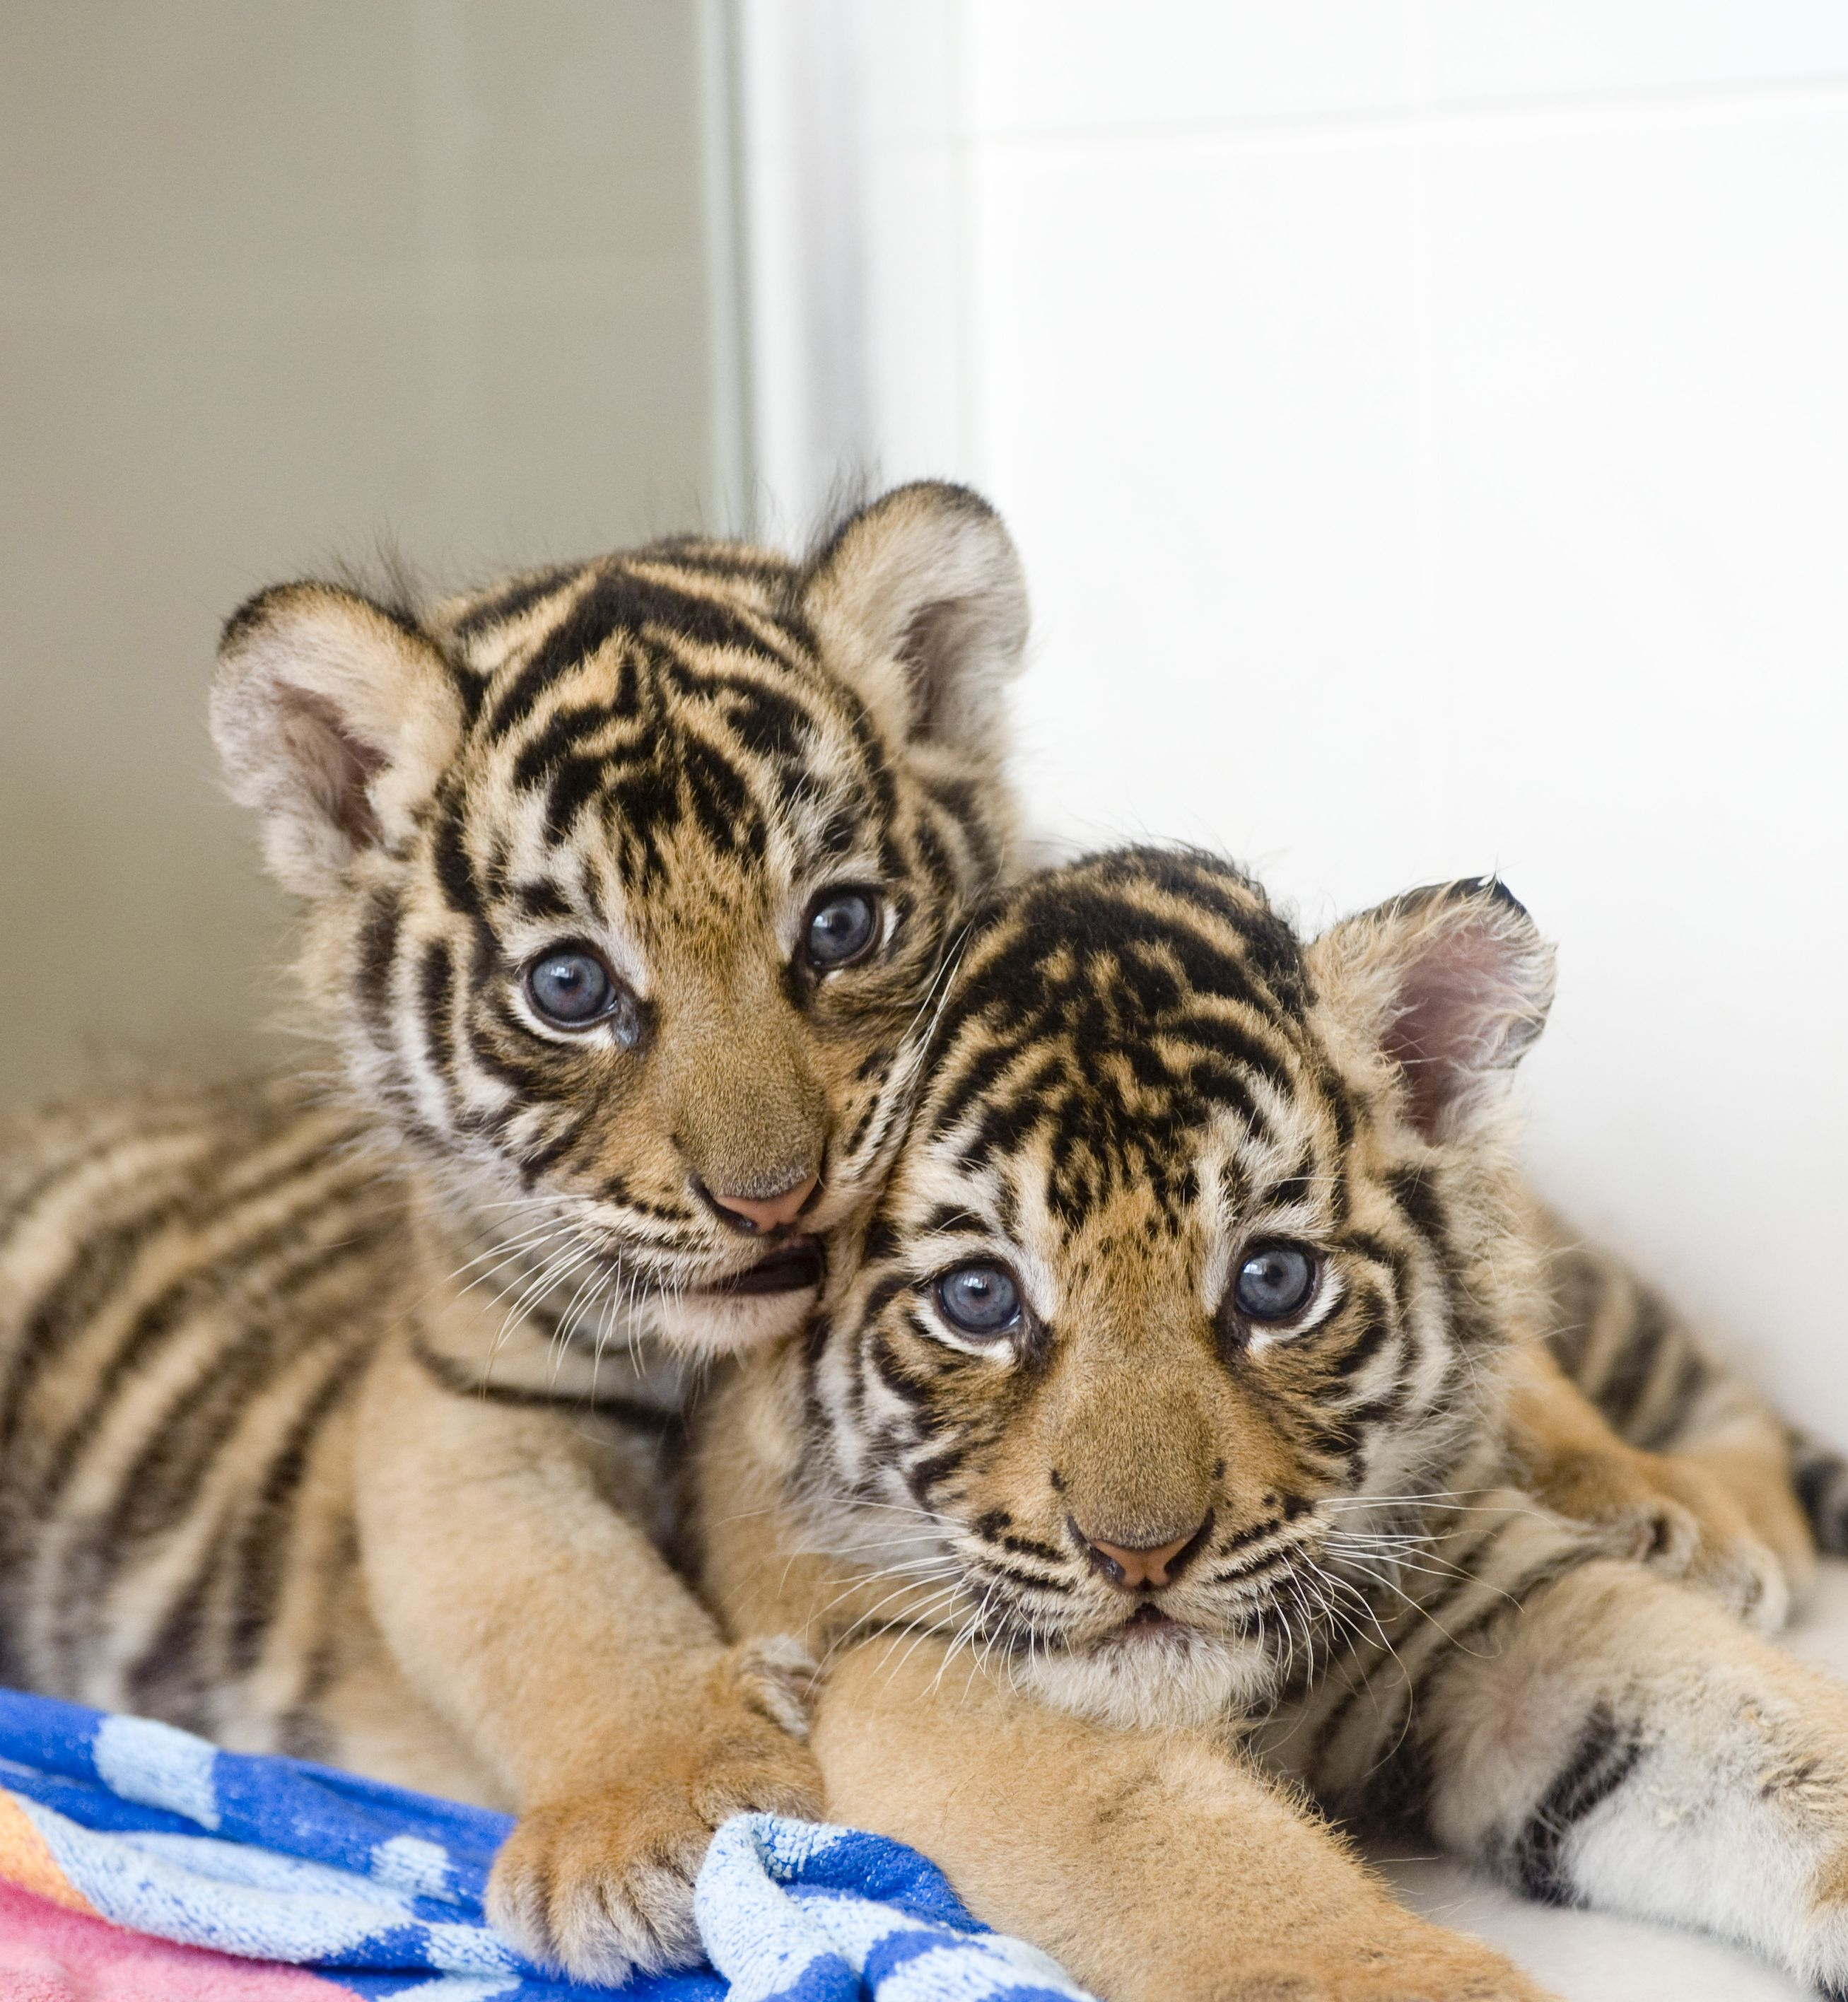 Bengal Tiger Cubs | Animals, Baby animals, Baby tigers